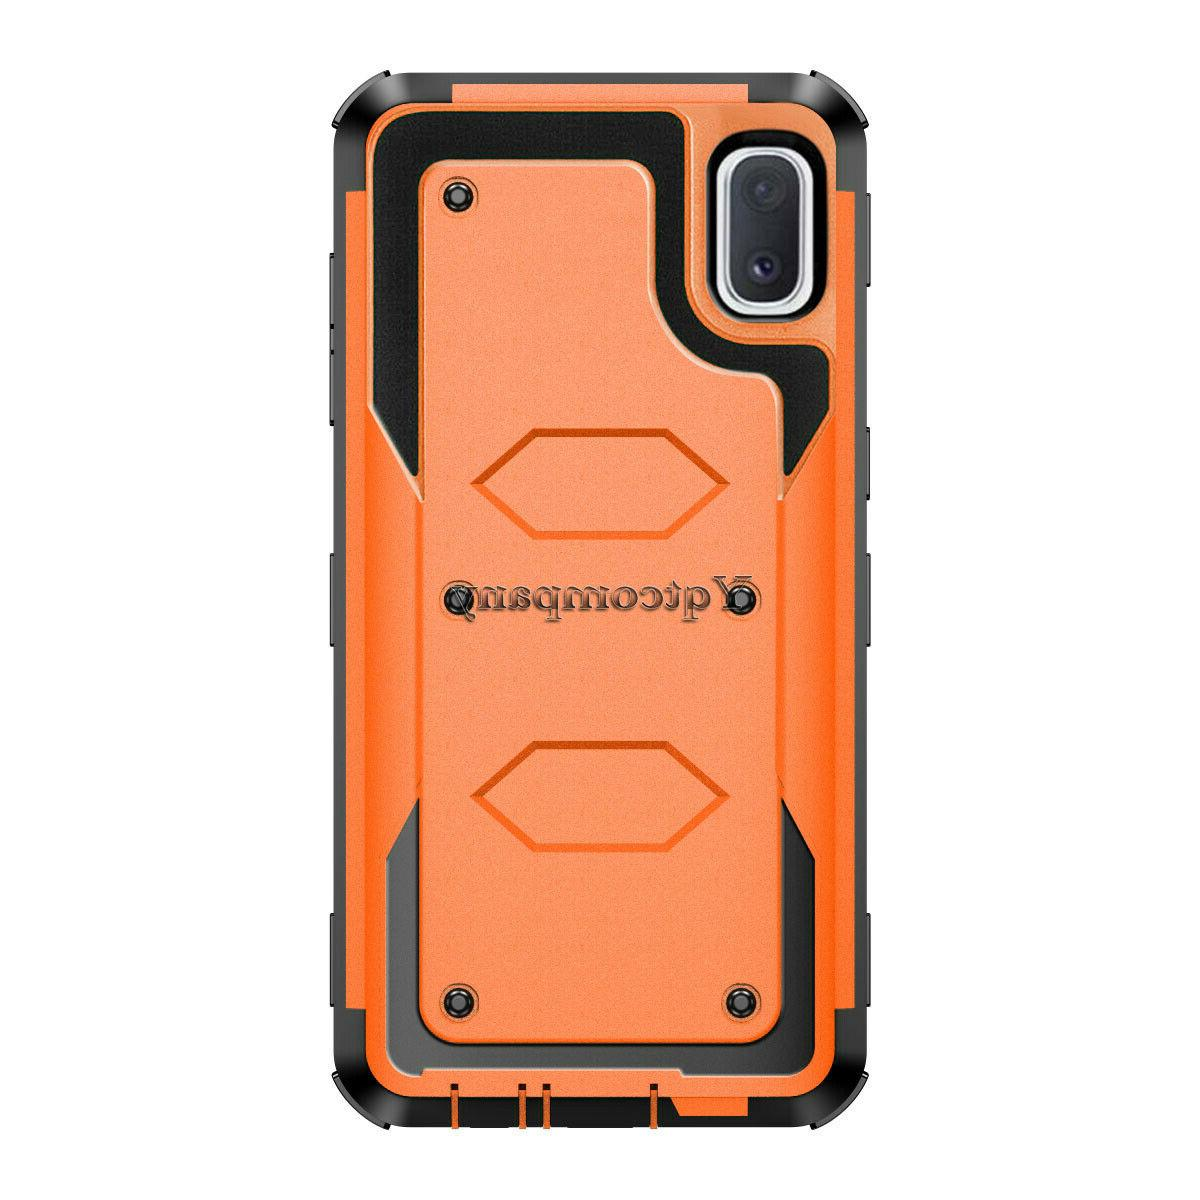 A30 A50 A10e Case Shockproof Rugged Cover